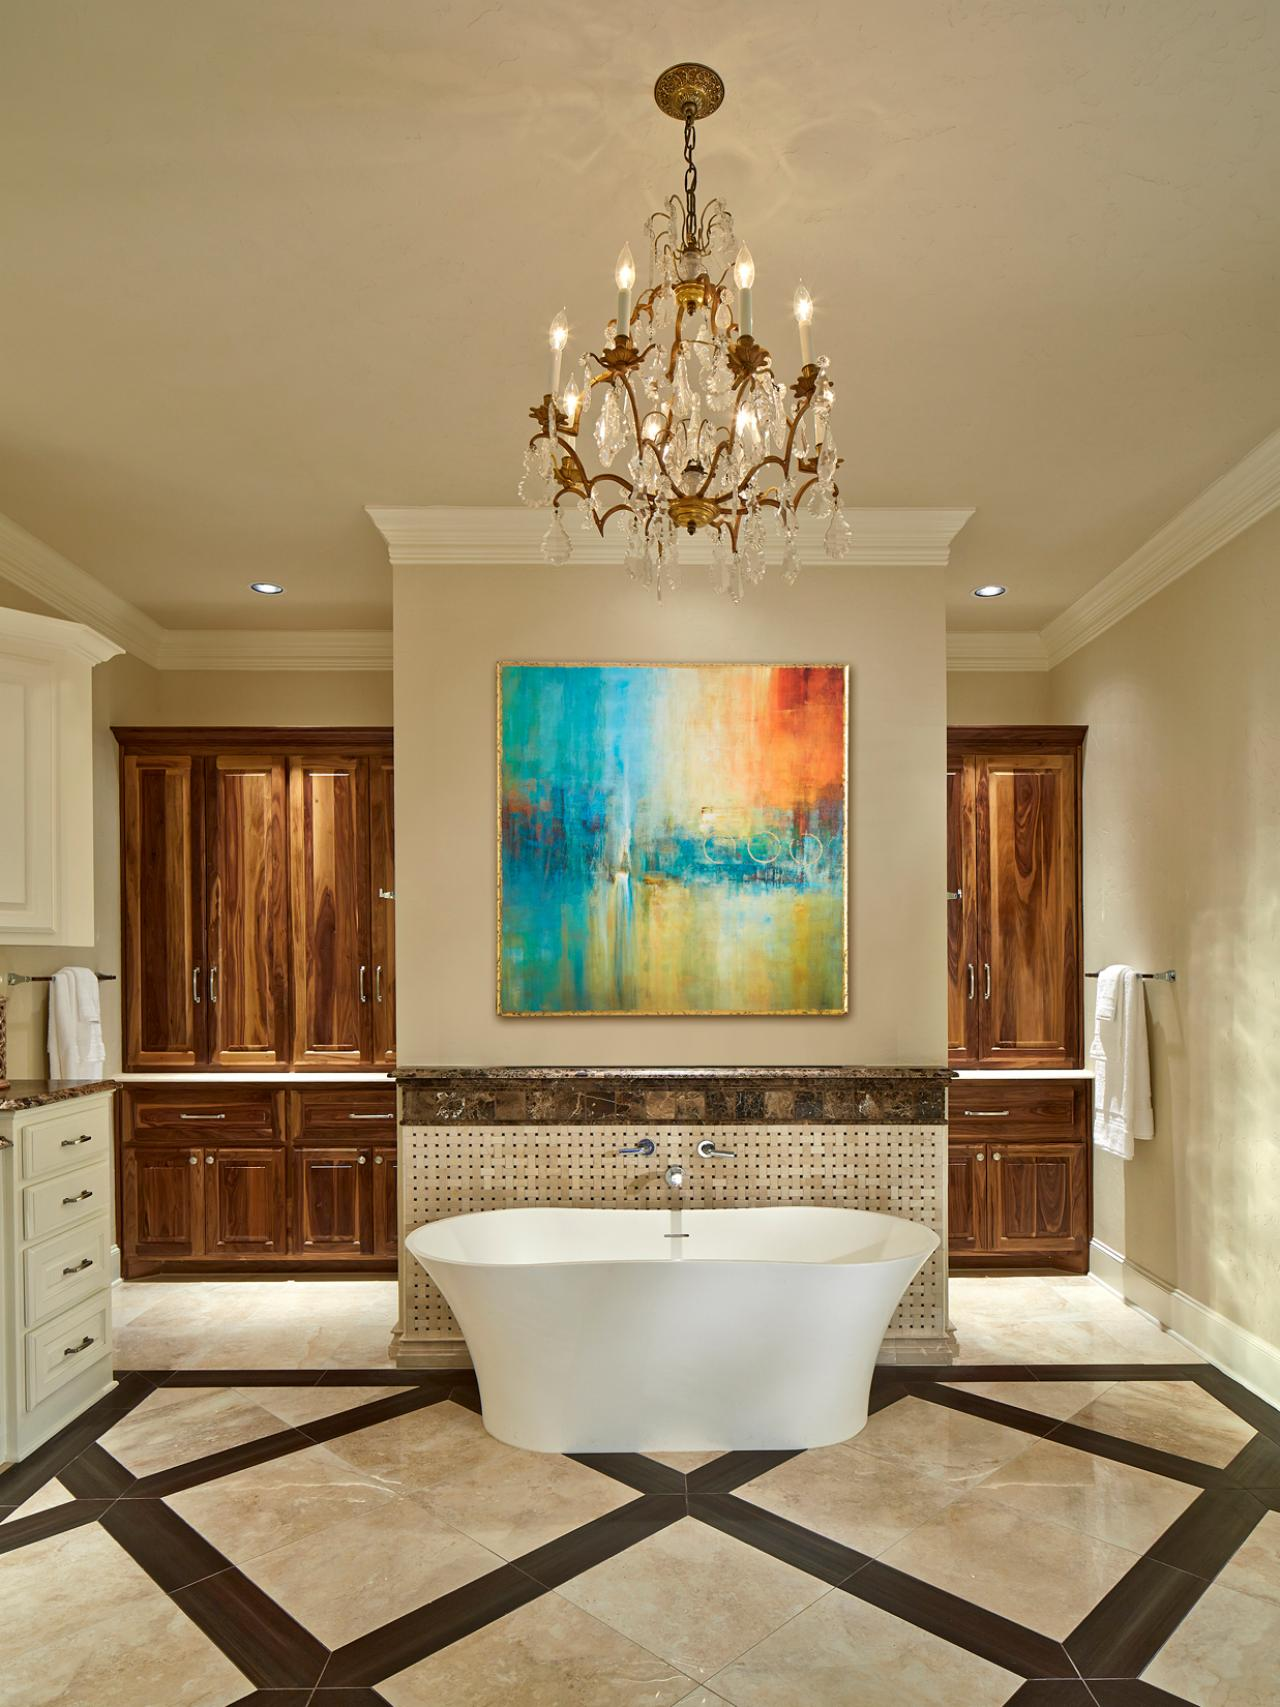 Large Master Bathroom With Freestanding Tub & Modern Art ...